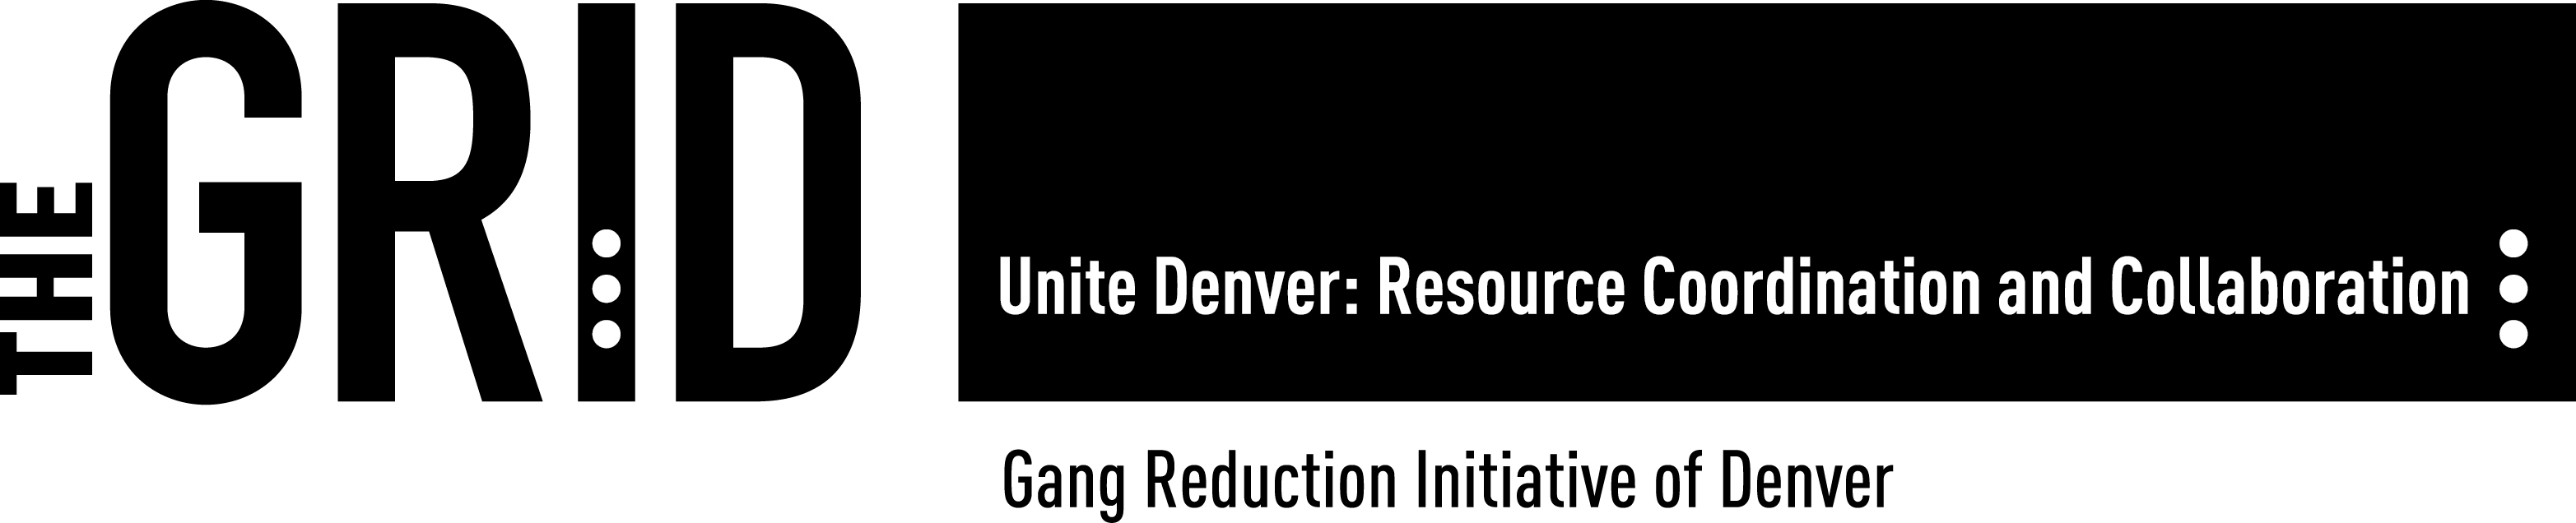 Gang Reduction Initiative of Denver logo